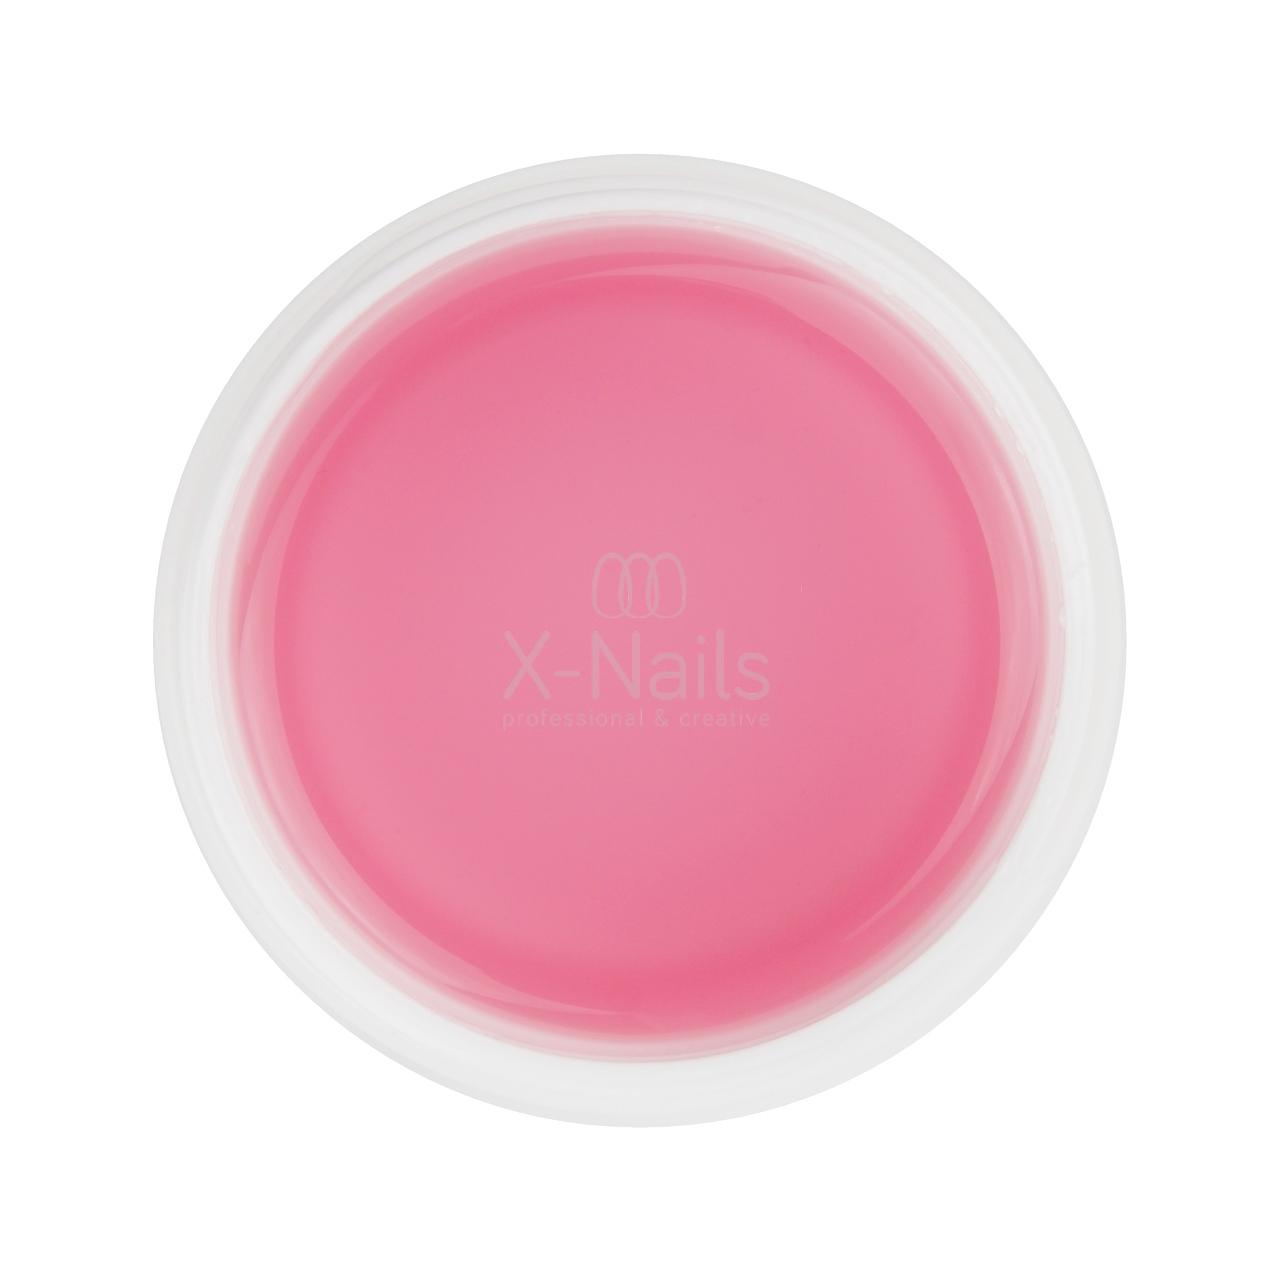 X-NAILS UV Classic Line AKRYGEL, 30 ml - PINK CLEAR